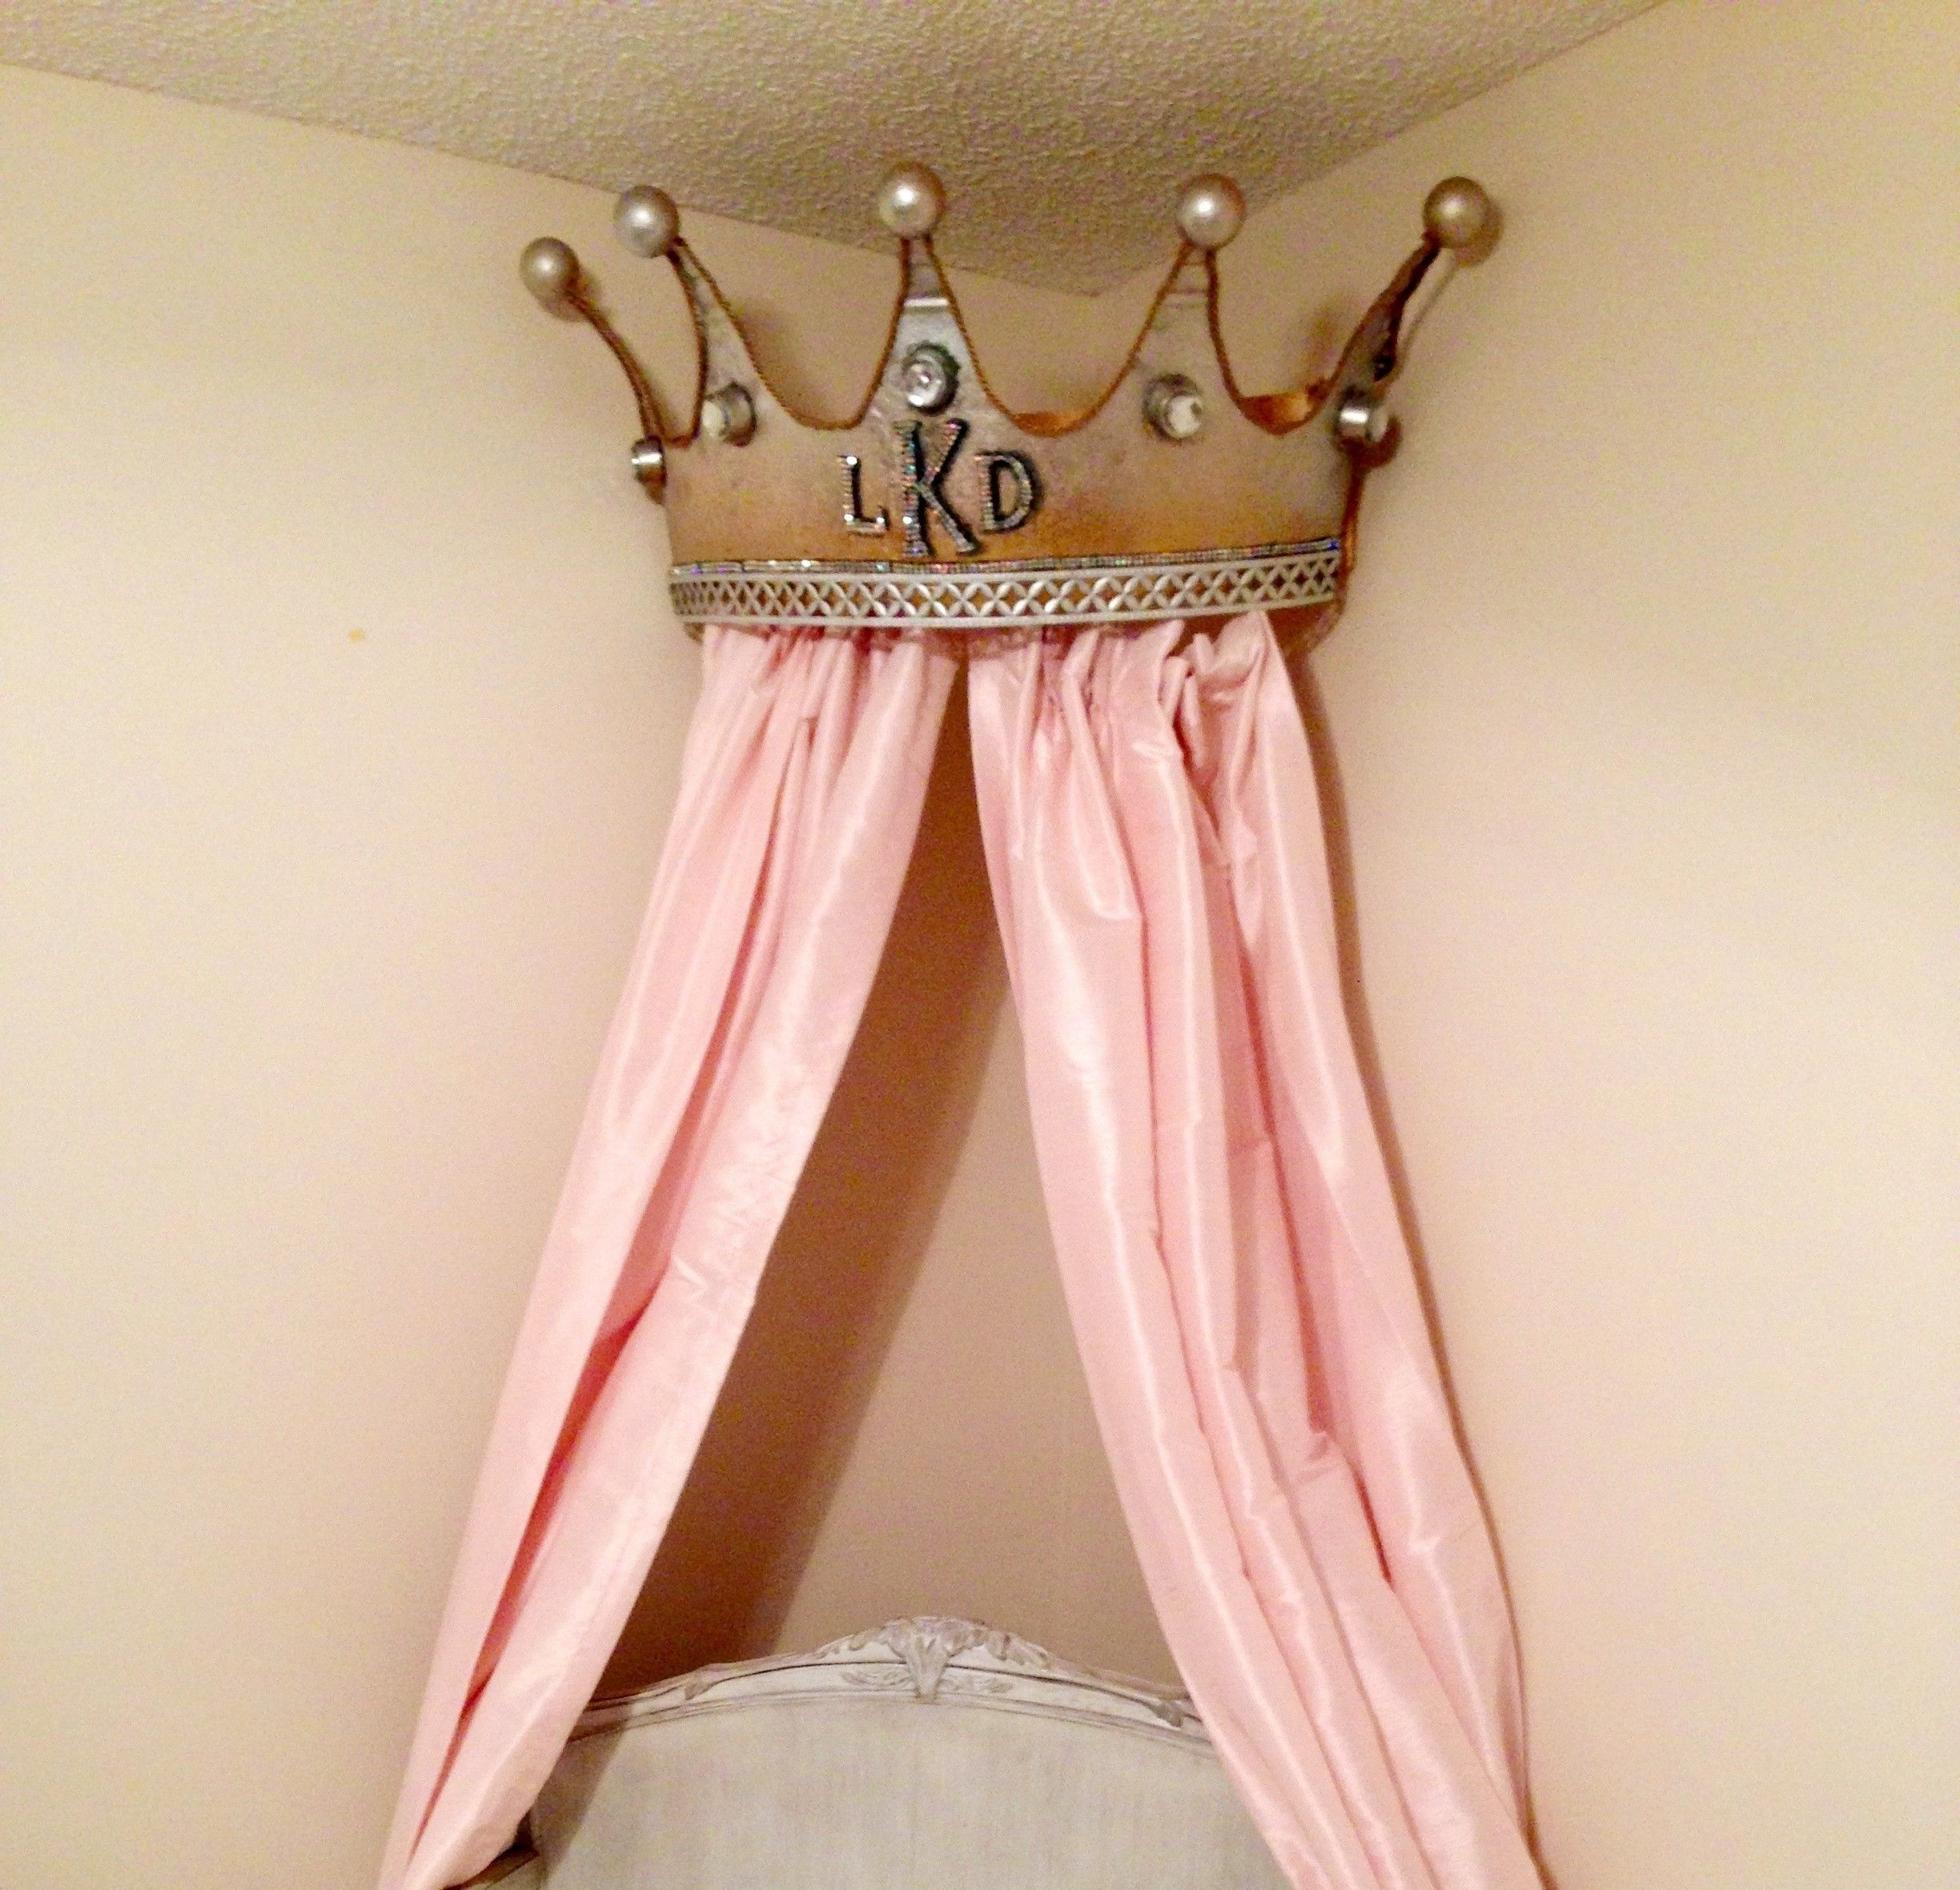 Princess Bed Canopy Girl Crown Pelmet Upholstered Awning: Bed Crown, Bed Crown Canopy